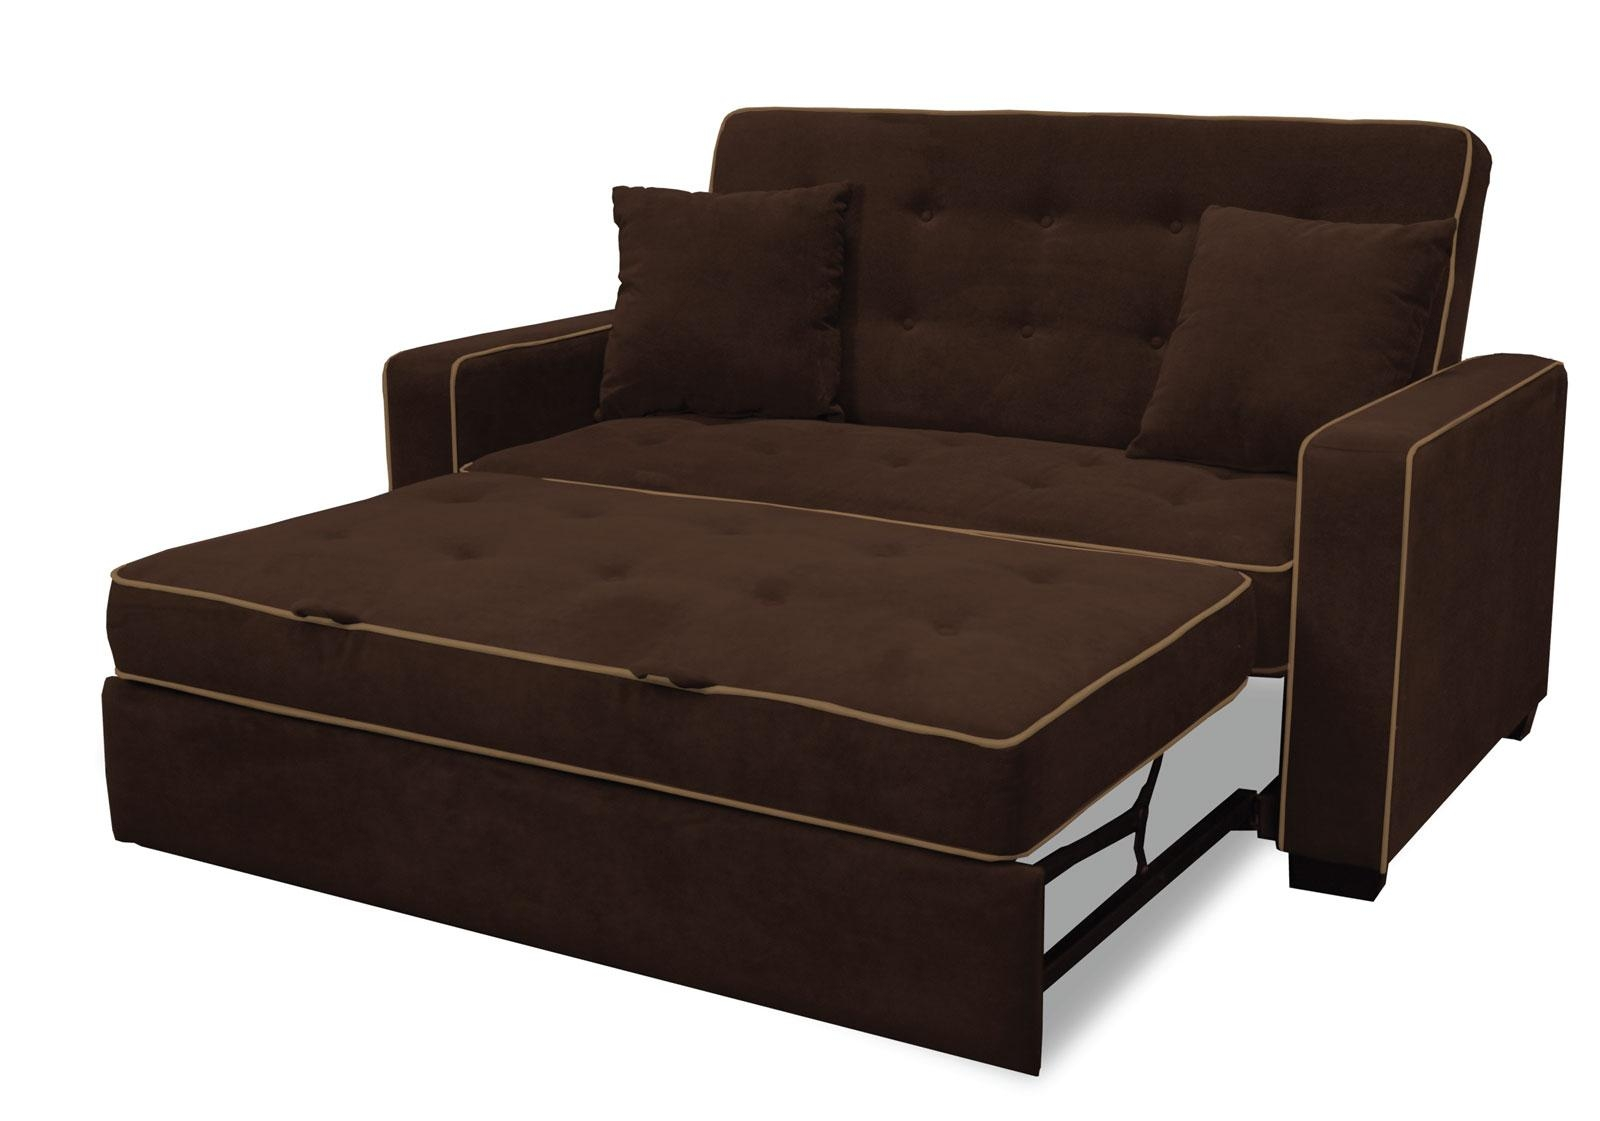 20 Top Sleeper Sofas Ikea Sofa Ideas